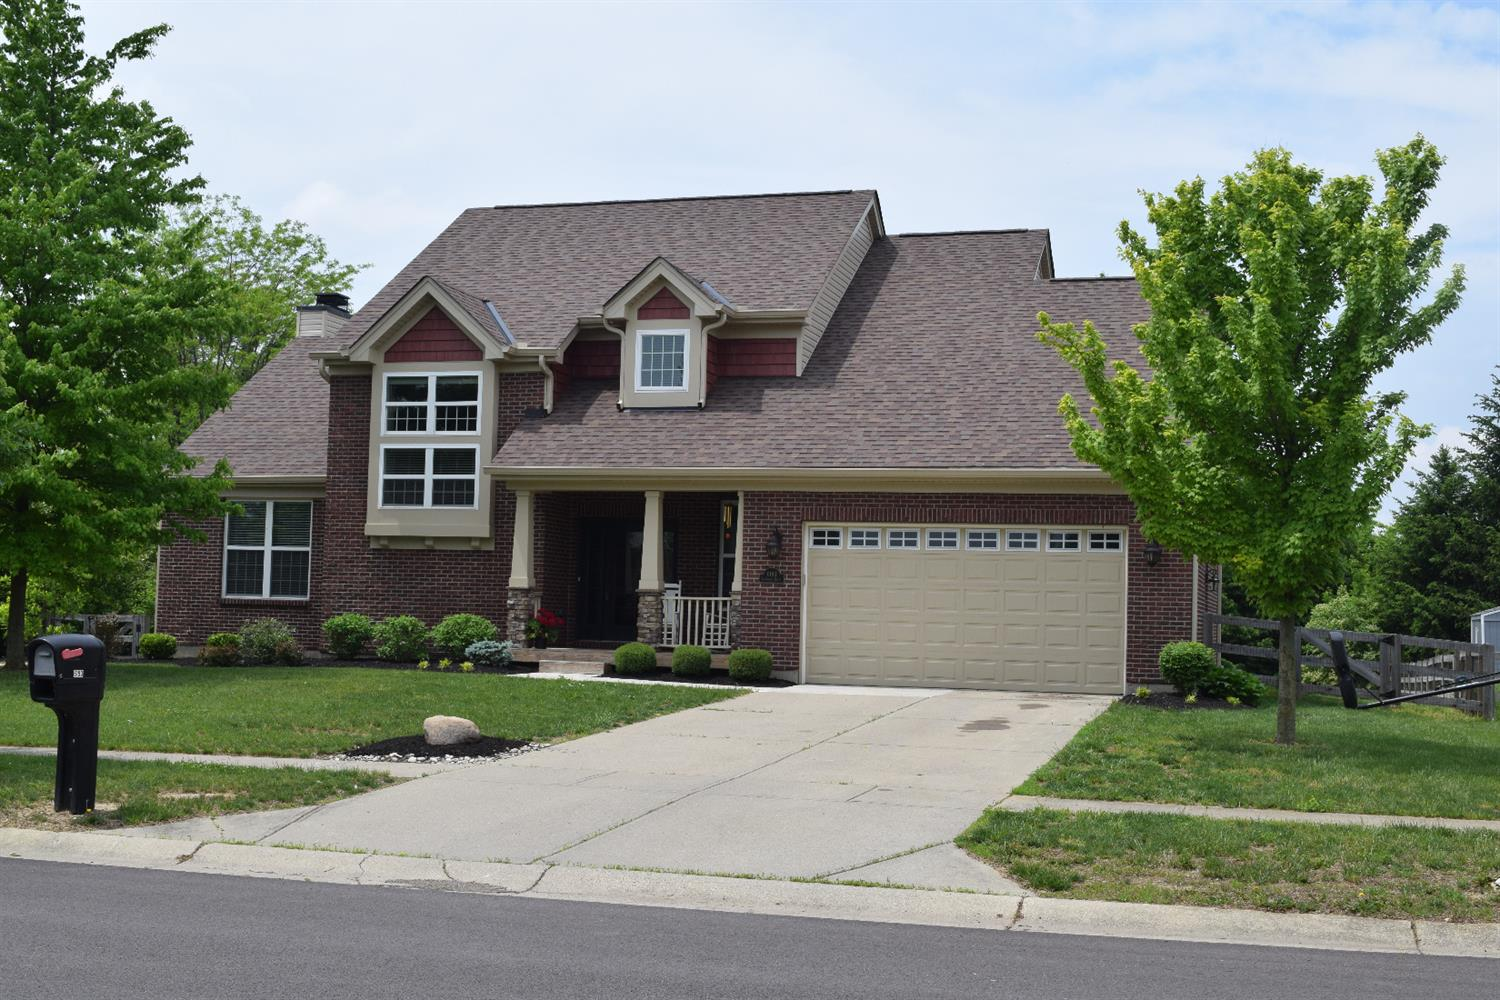 6193 Lakewood Dr Fairfield Twp., OH